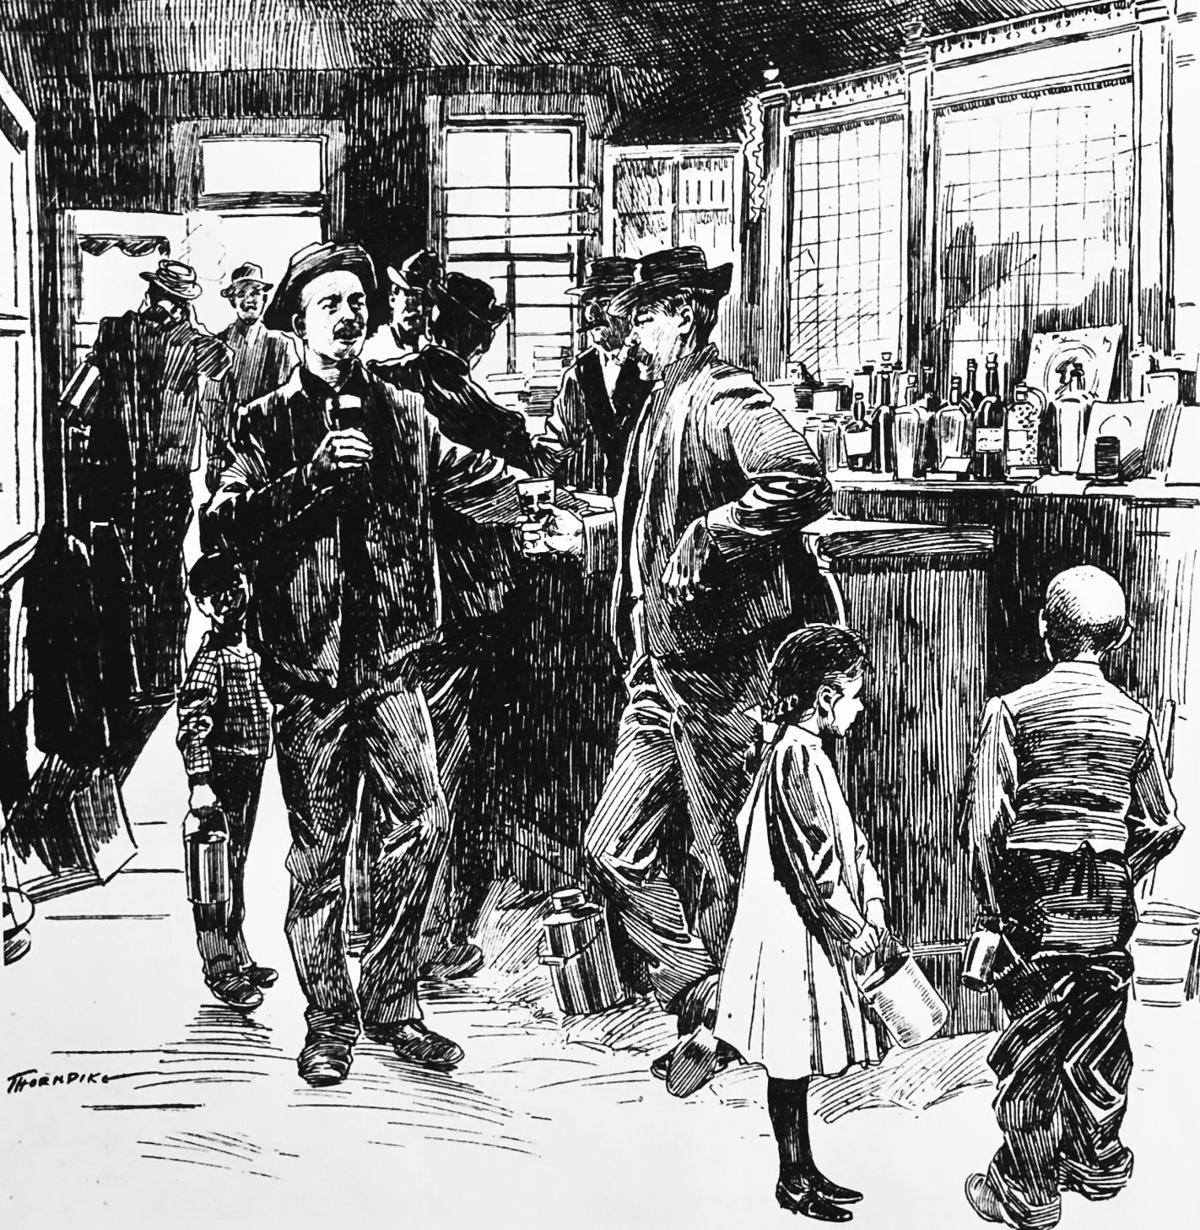 A Typical Butte Scene at the End of the Shift October 1901